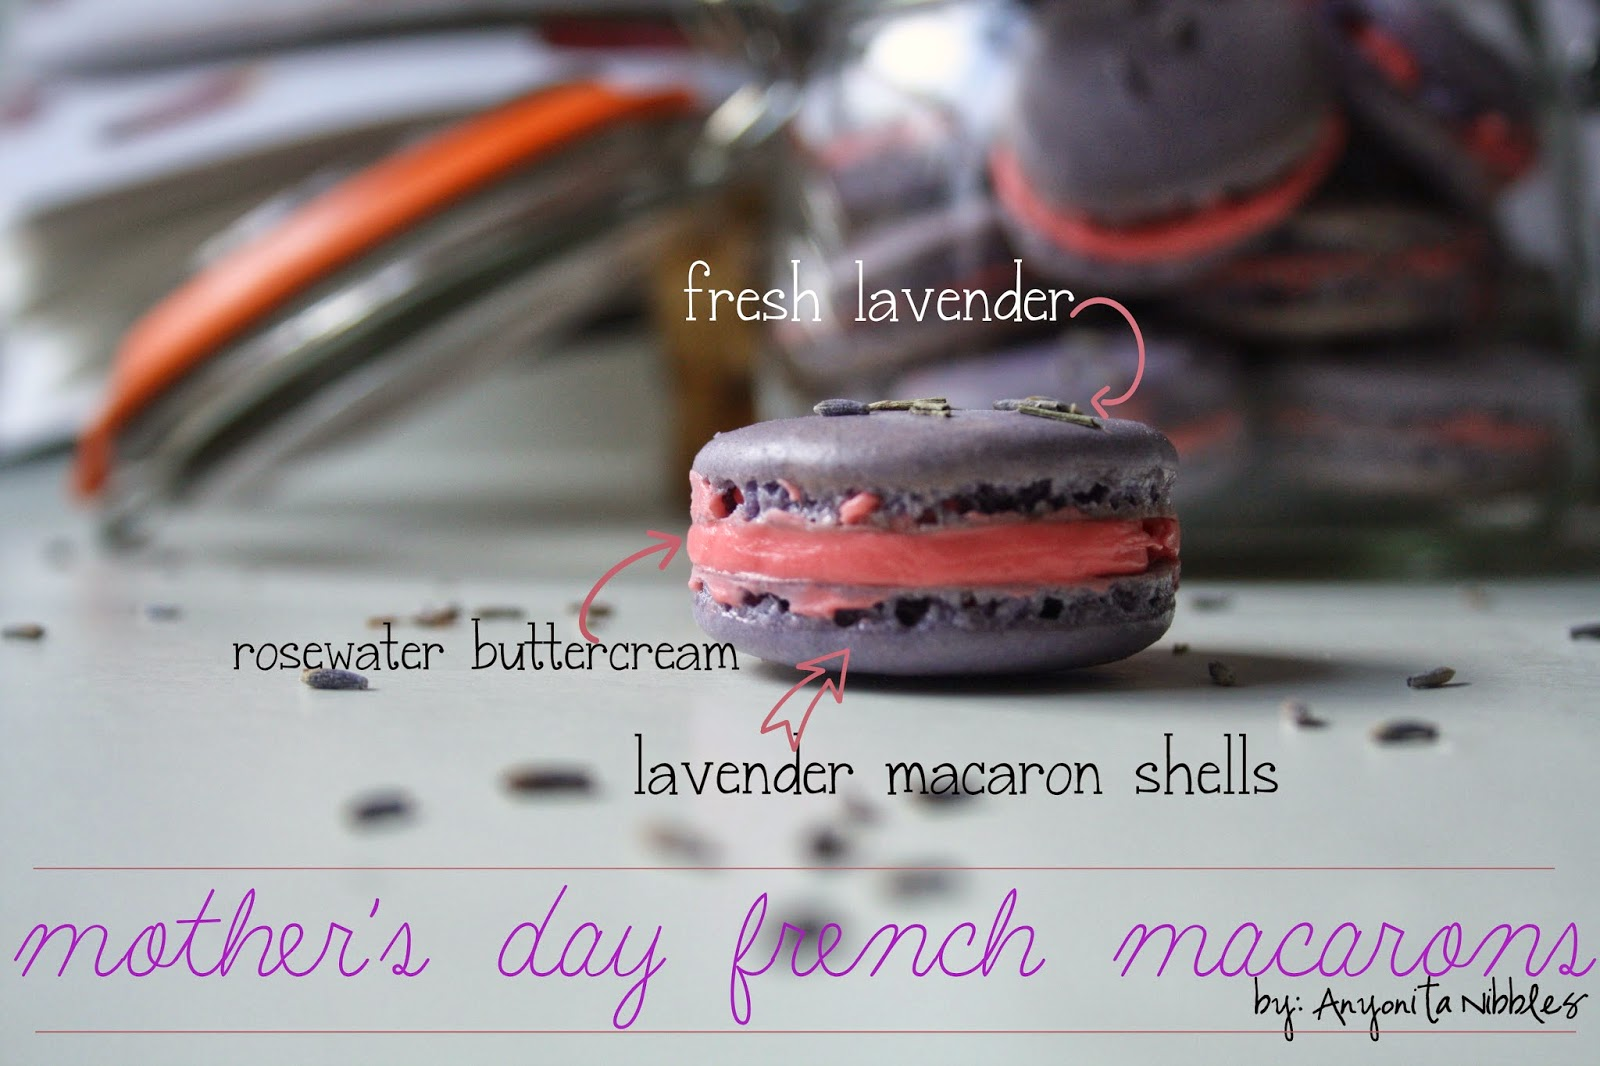 Components of a lavender and rose French macaron from @anyonita